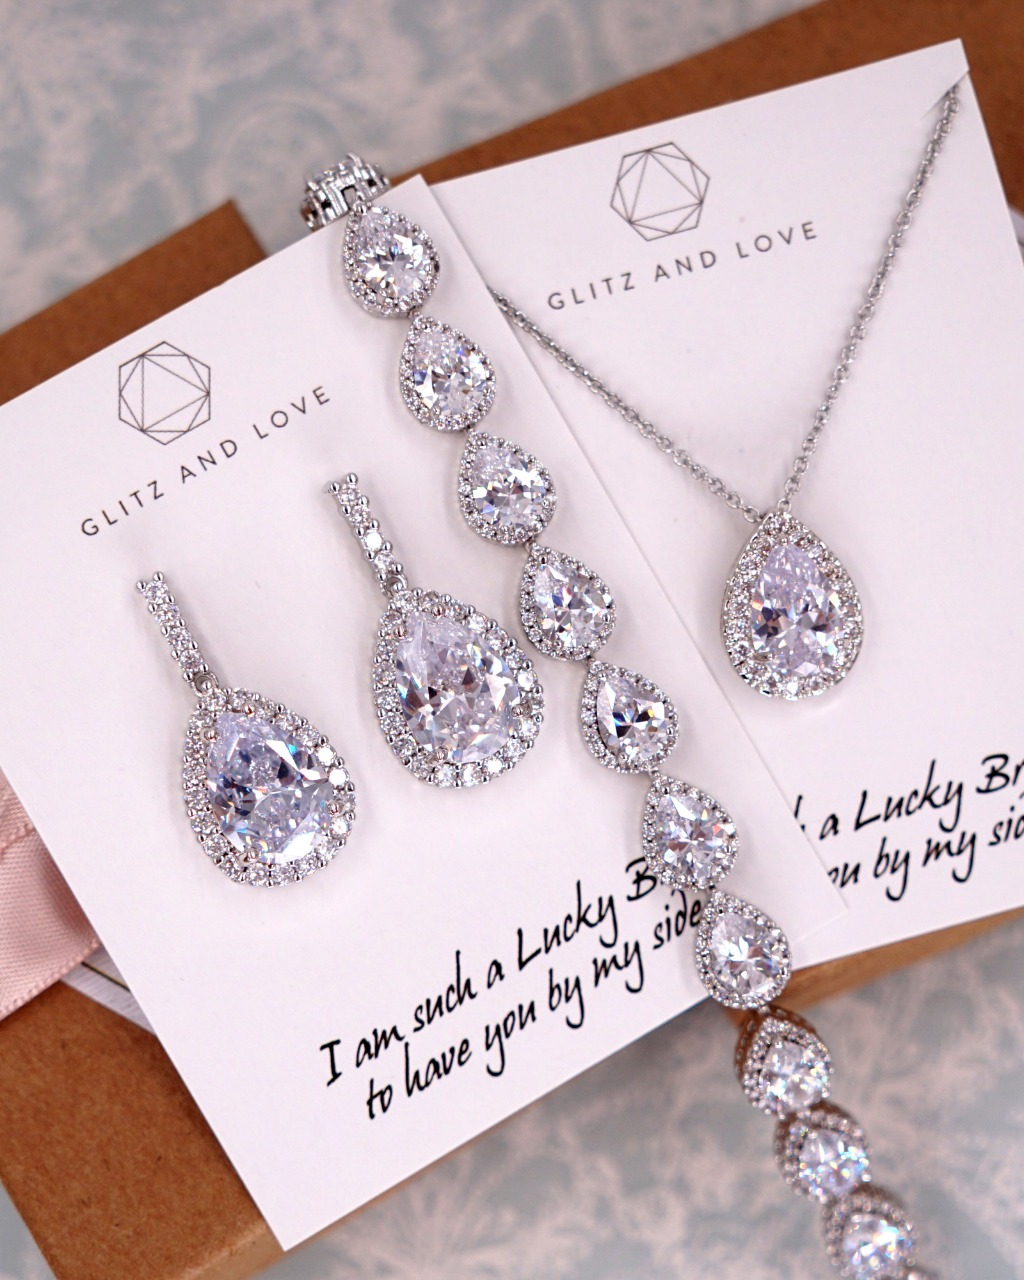 Silver Cubic Zirconia Jewelry set, earrings, bracelet, necklace, for brides, bridesmaids, bridal shower gifts, wedding parties, mother